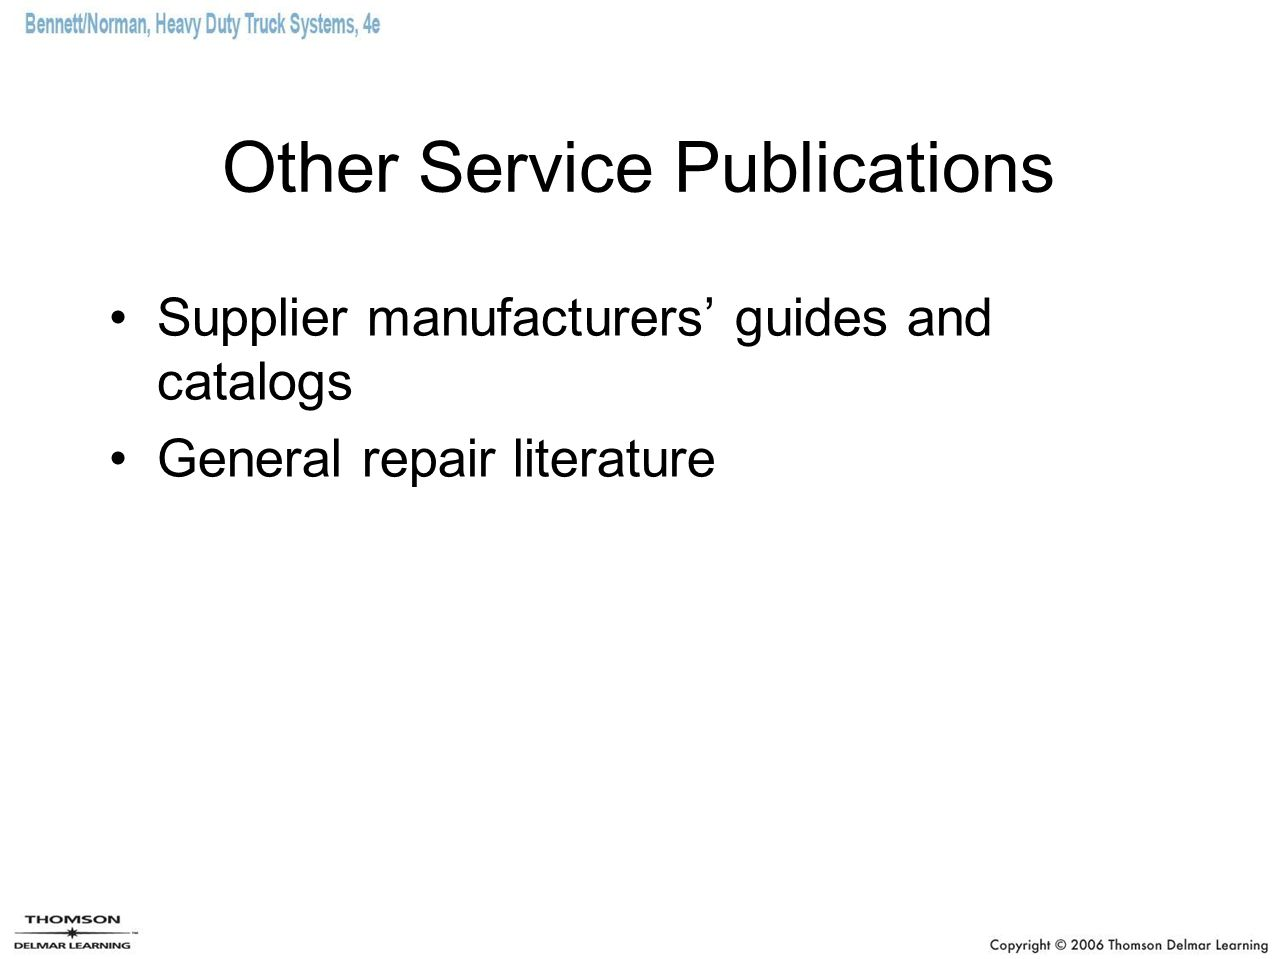 Other Service Publications